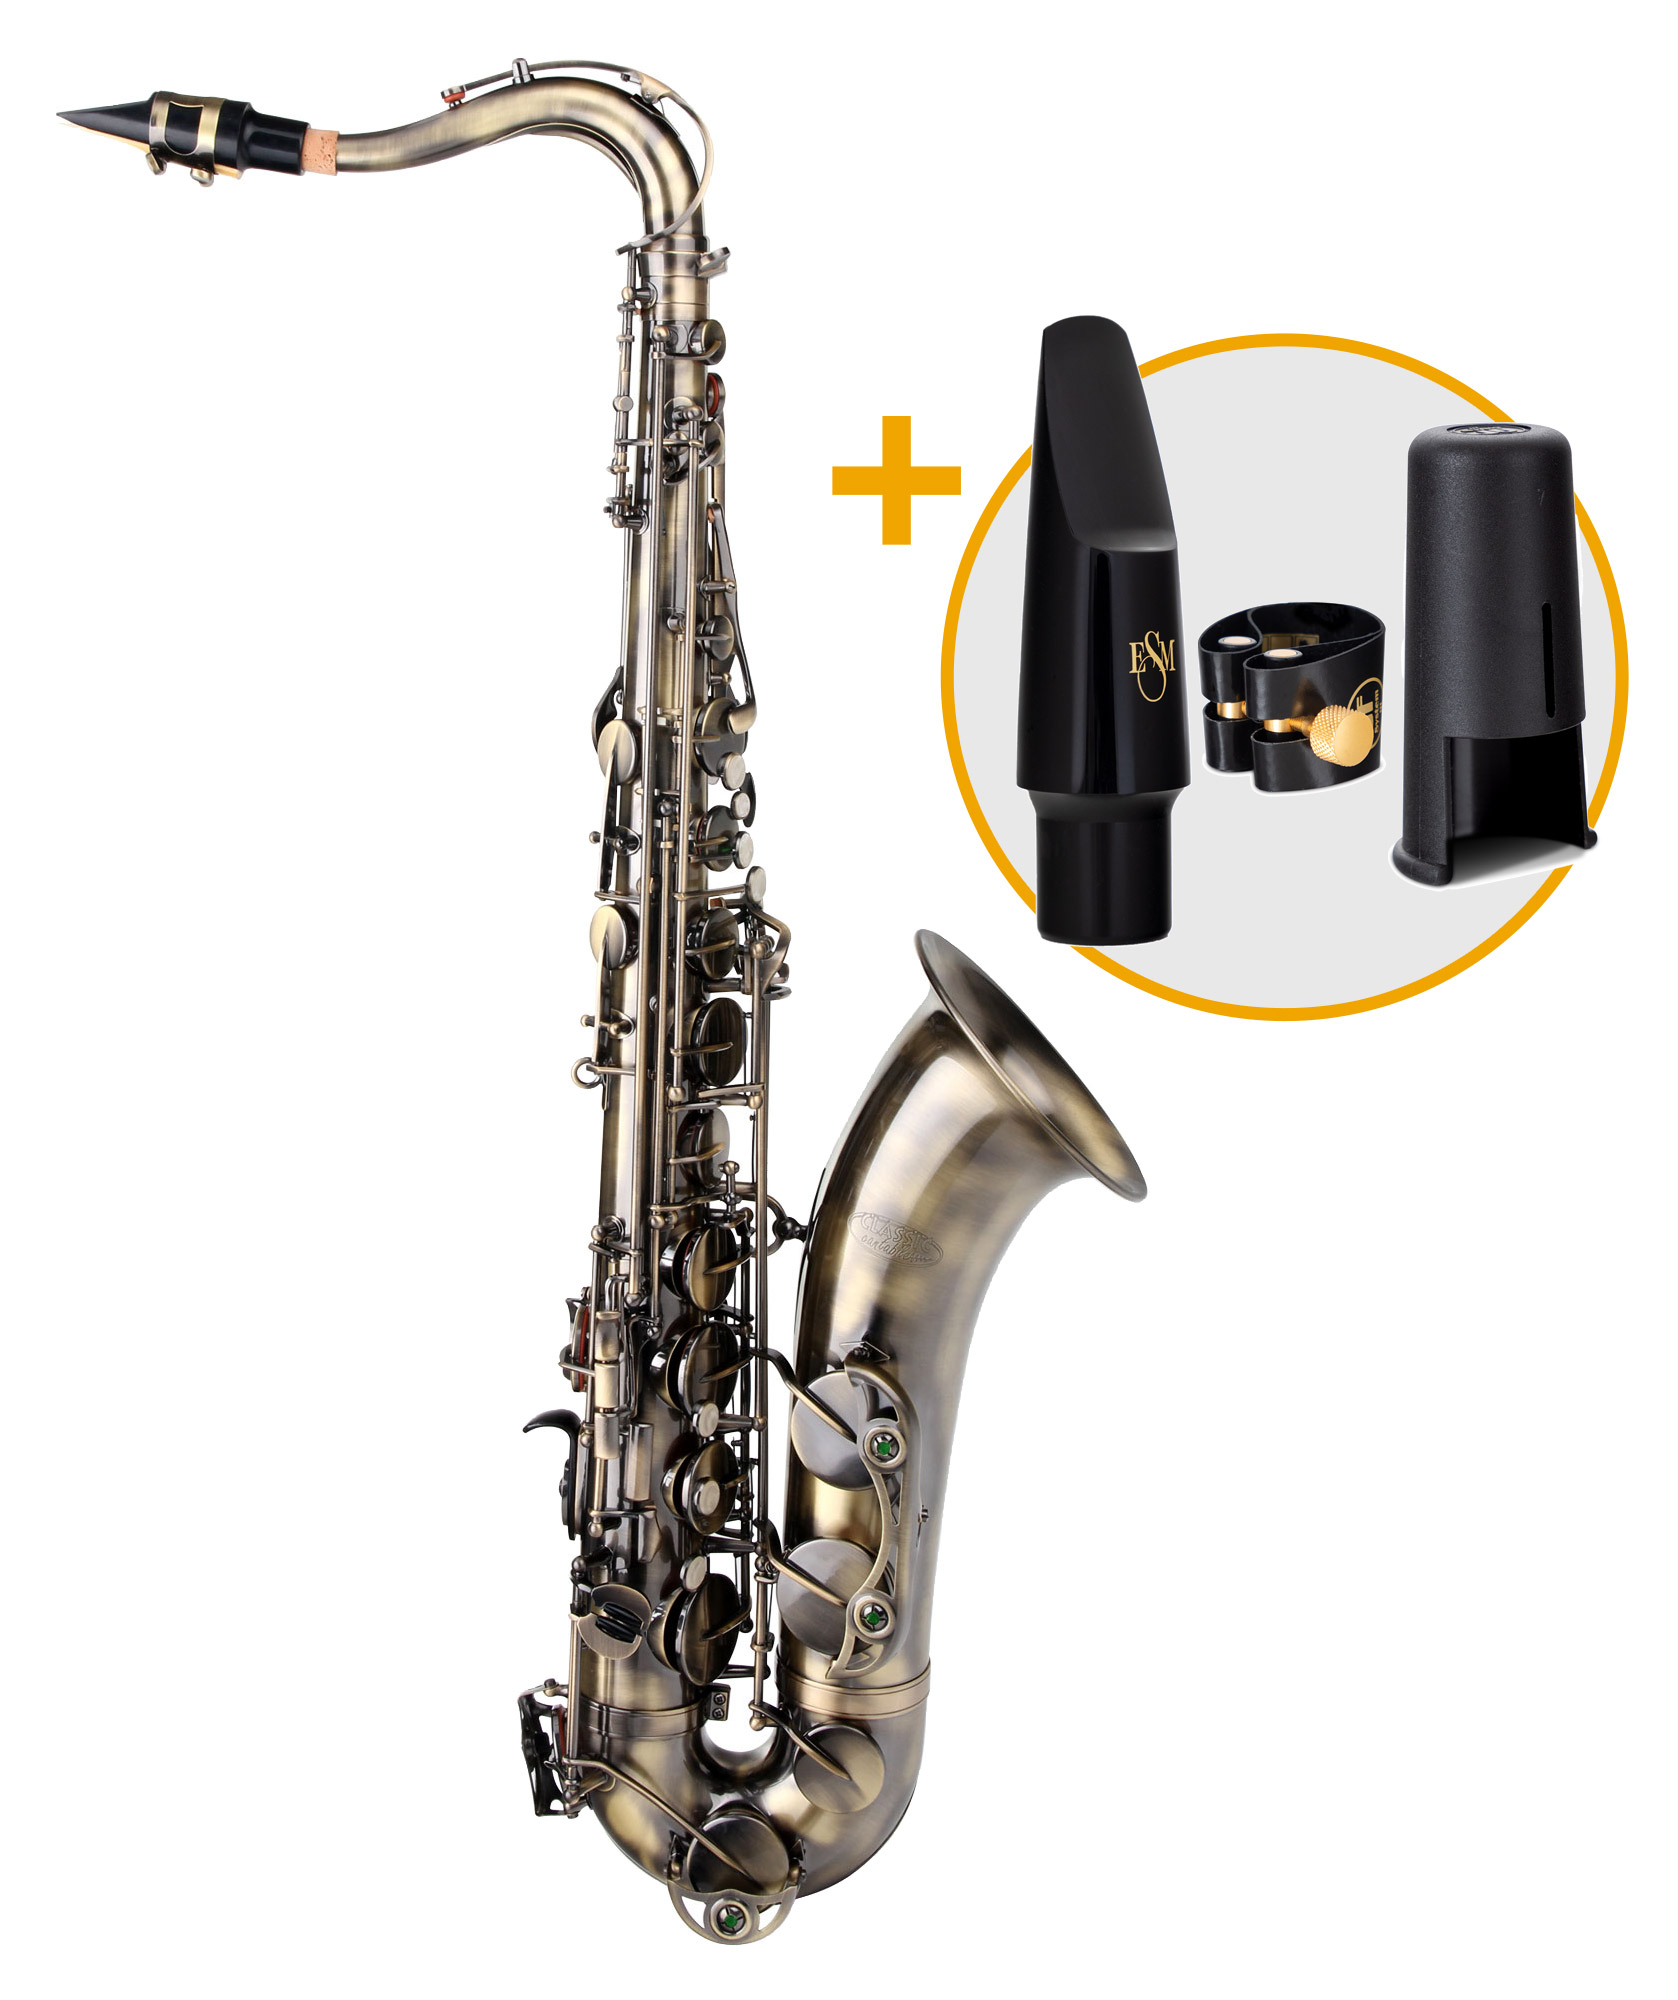 Saxophone - Classic Cantabile Winds TS 450 Antique Yellow Tenorsaxophon ESM Set - Onlineshop Musikhaus Kirstein